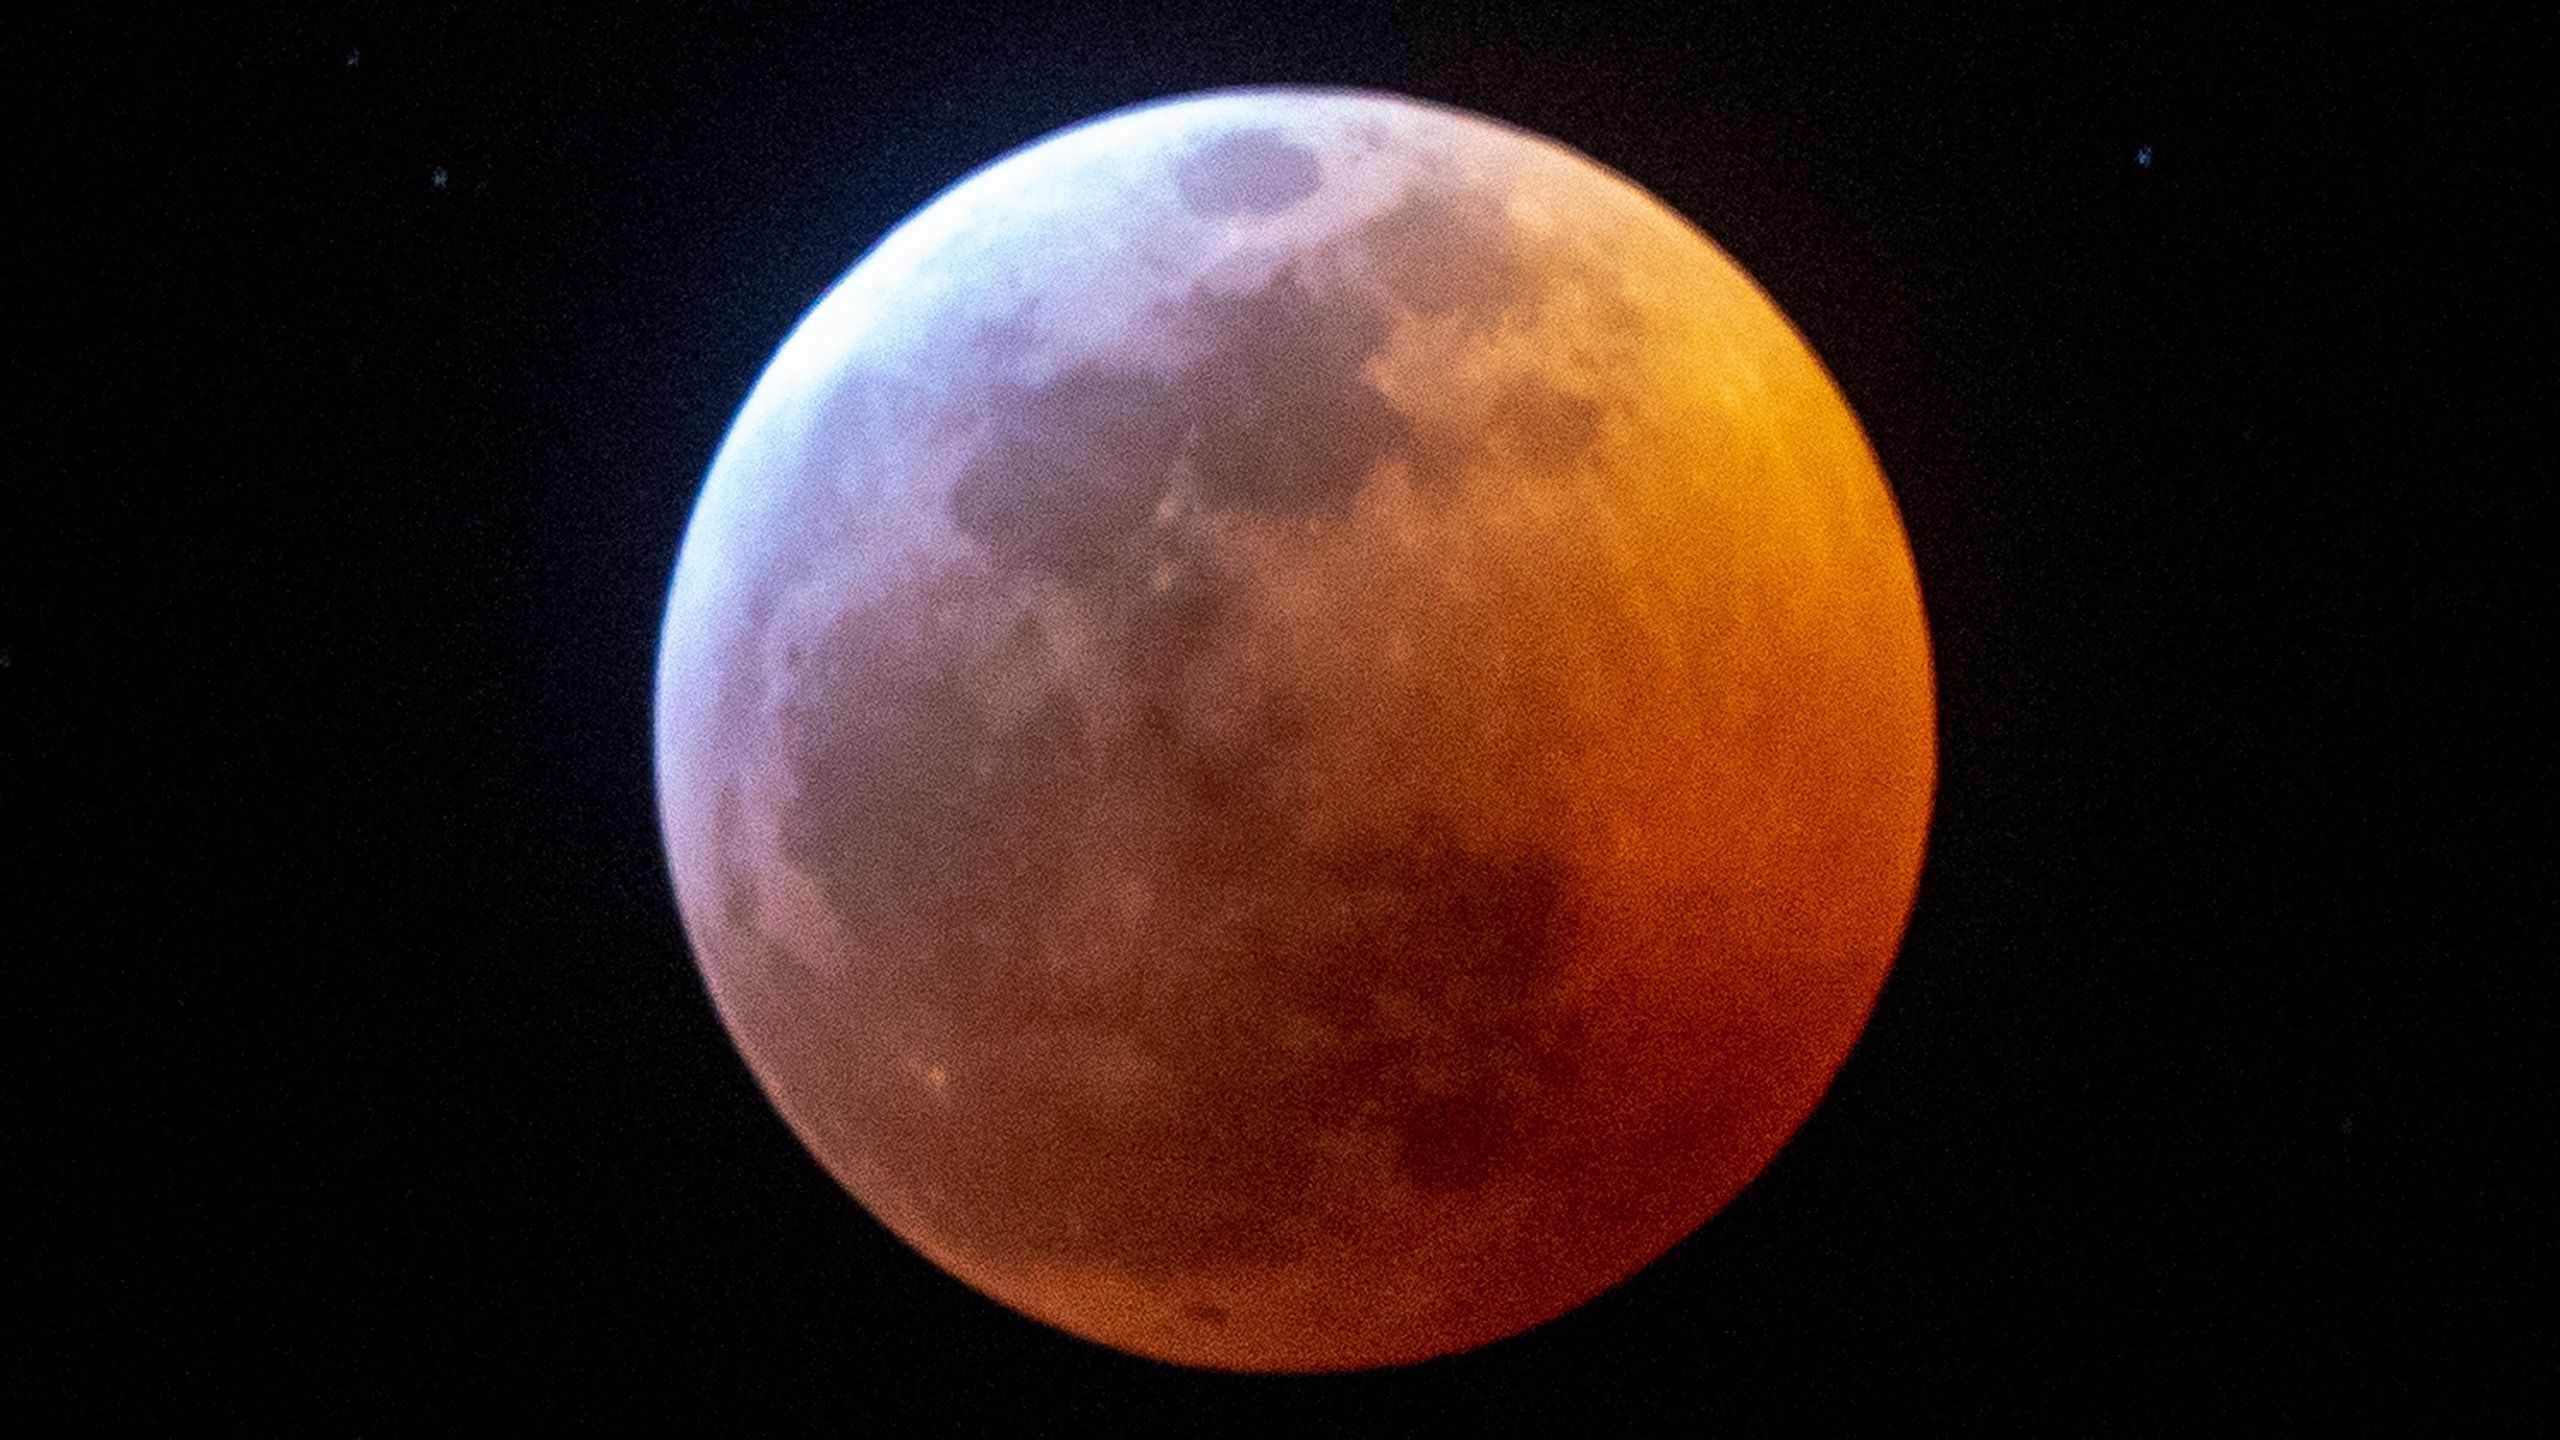 Earth's shadow almost totally obscures the view of the so-called Super Blood Wolf Moon during a total lunar eclipse, on Sunday January 20, 2019, in Miami. (Credit: GASTON DE CARDENAS/AFP/Getty Images)